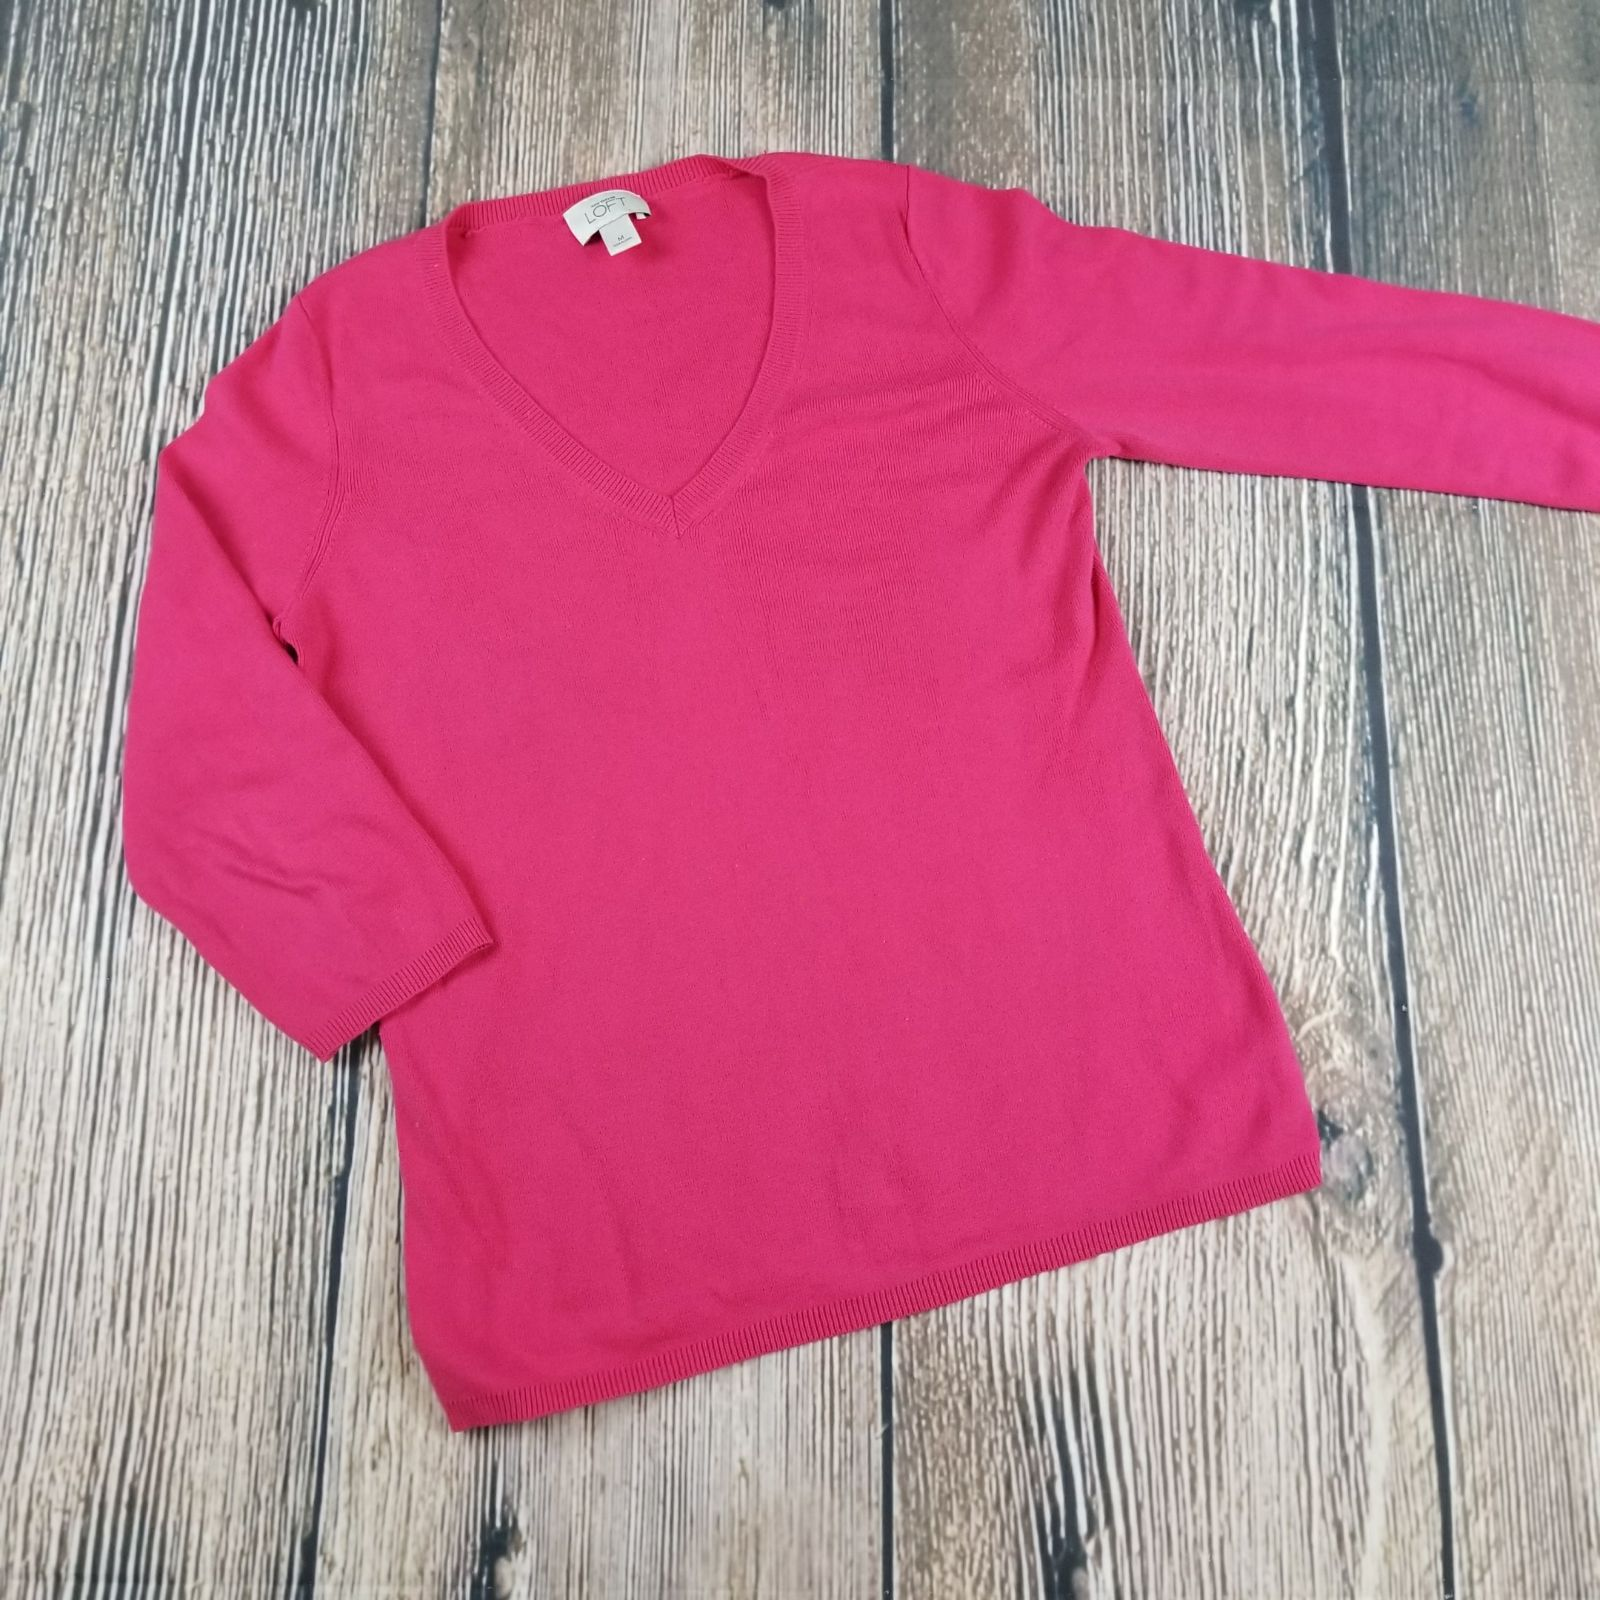 ANN TAYLOR LOFT v-neck hot pink sweater - Mercari: BUY & SELL ...